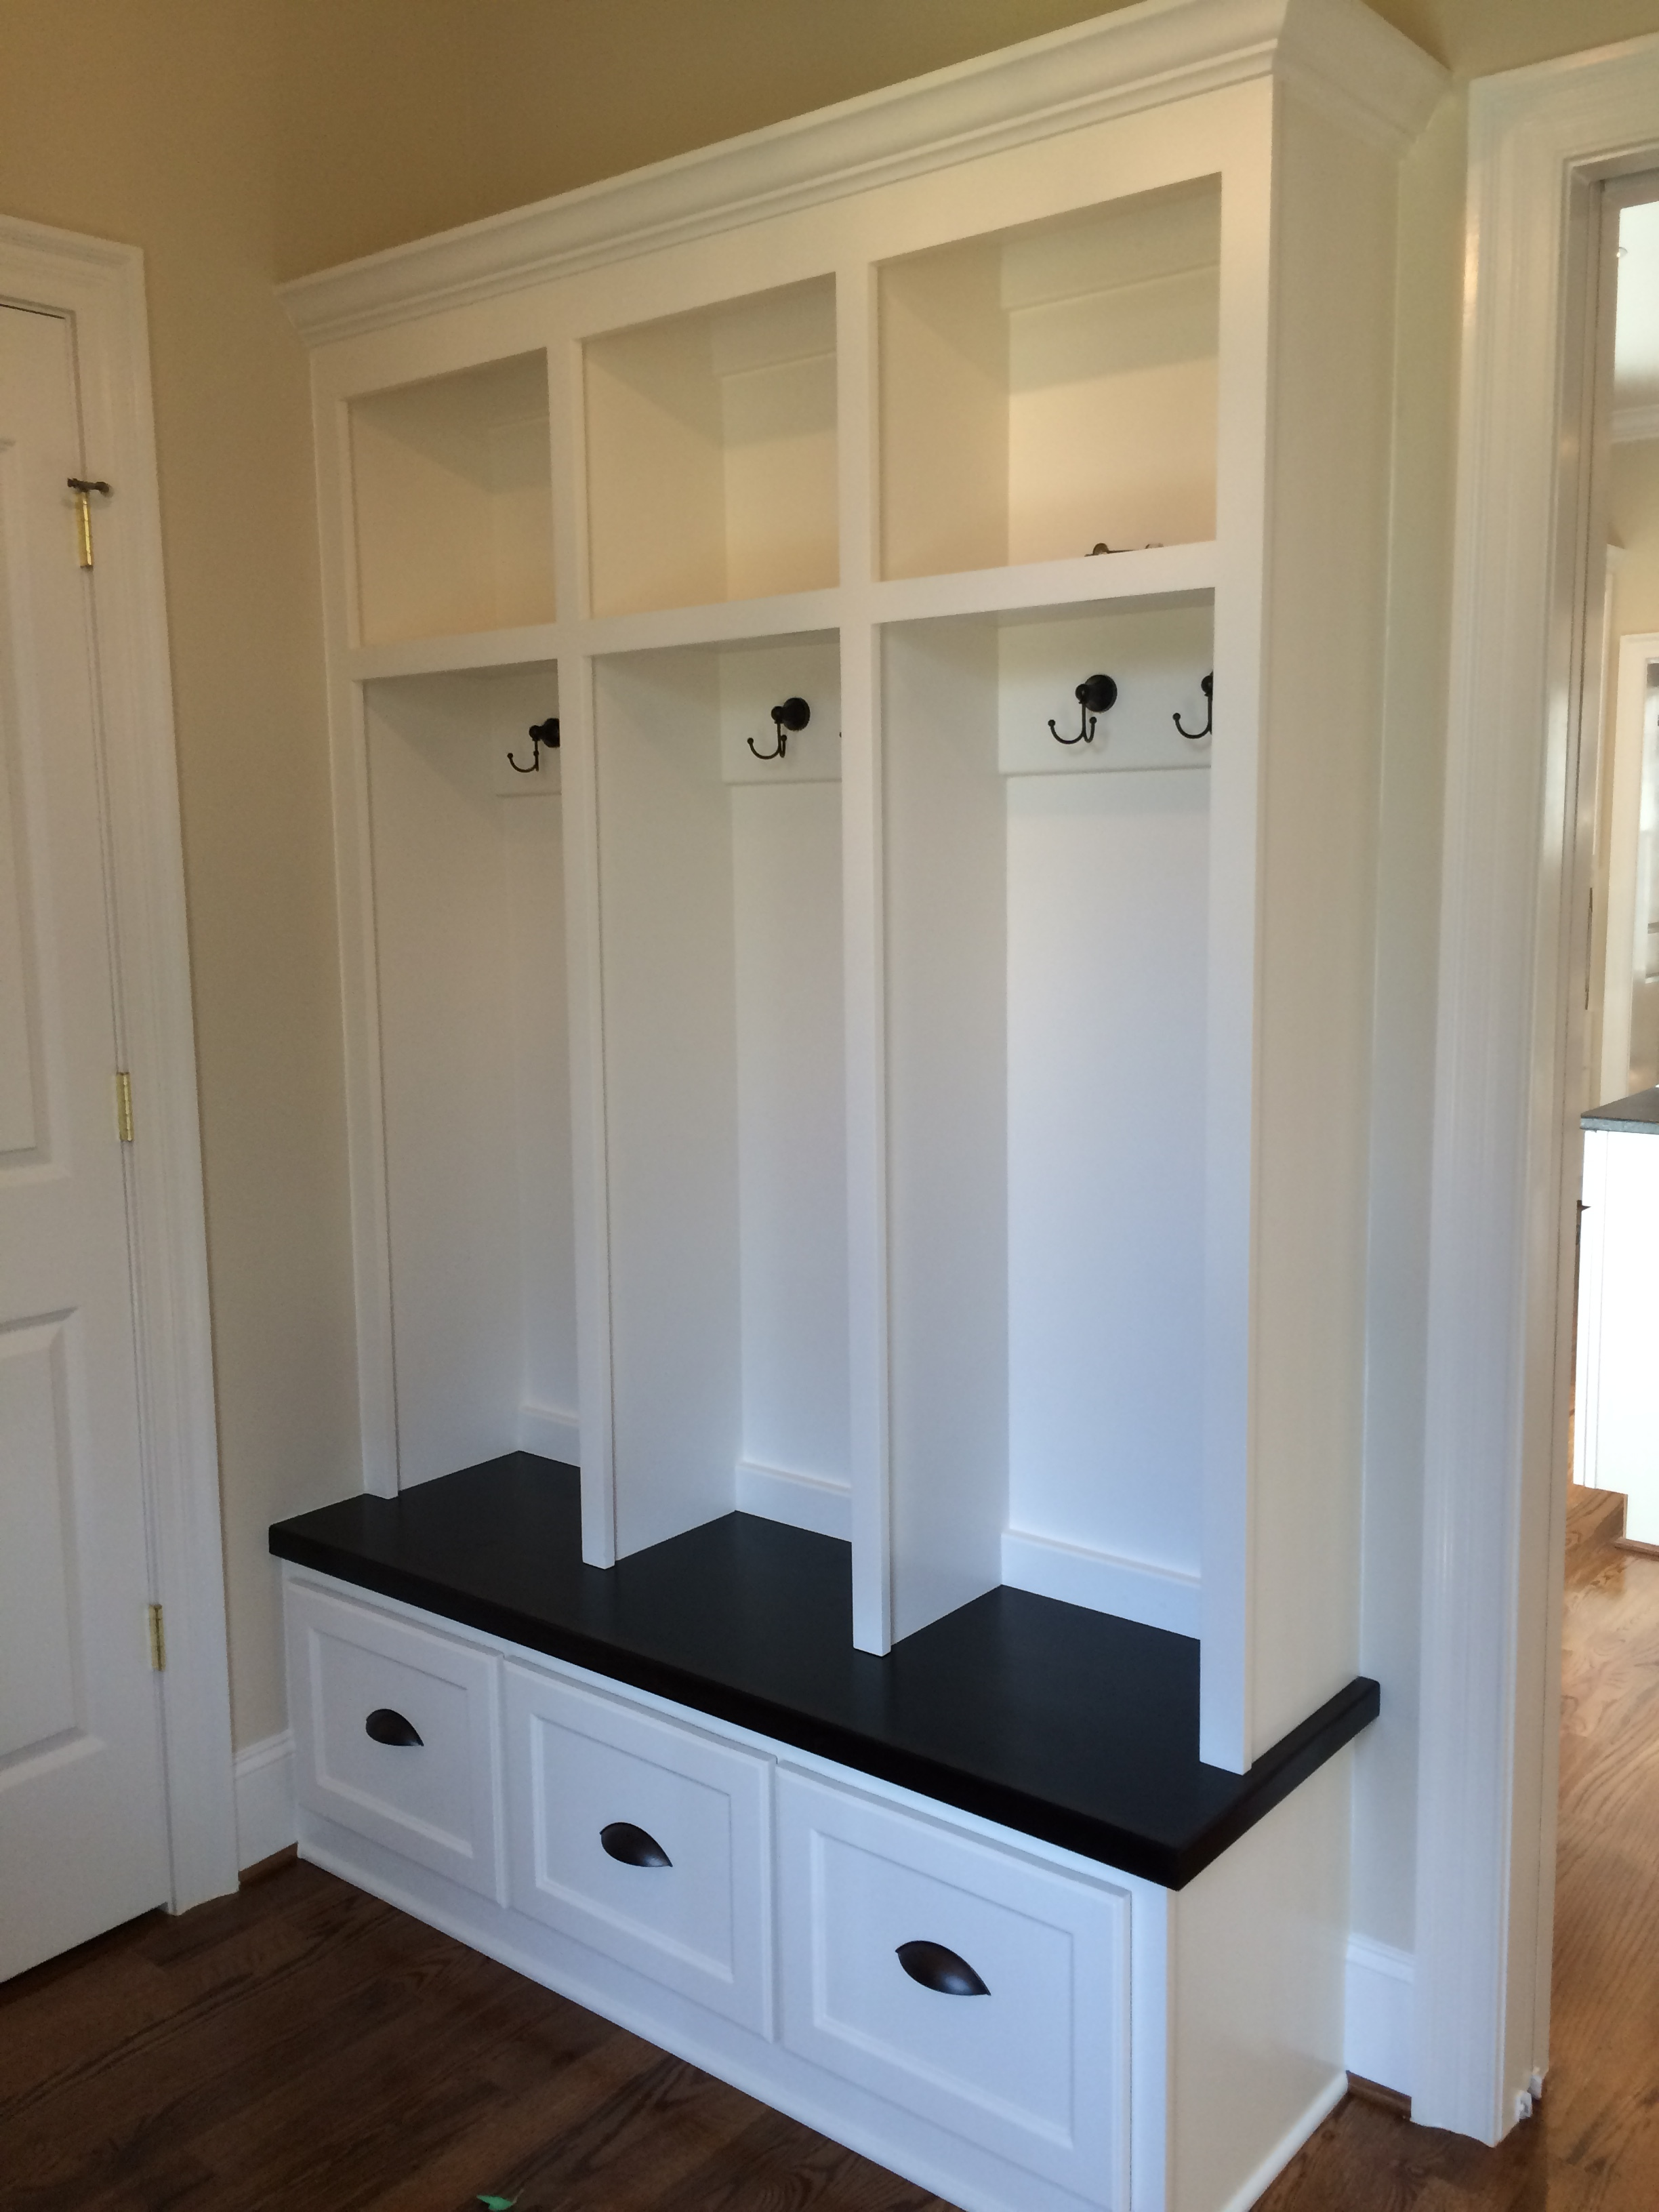 Mud Bench Locker Style with Shaker Drawers, Stain Tops, and Crown